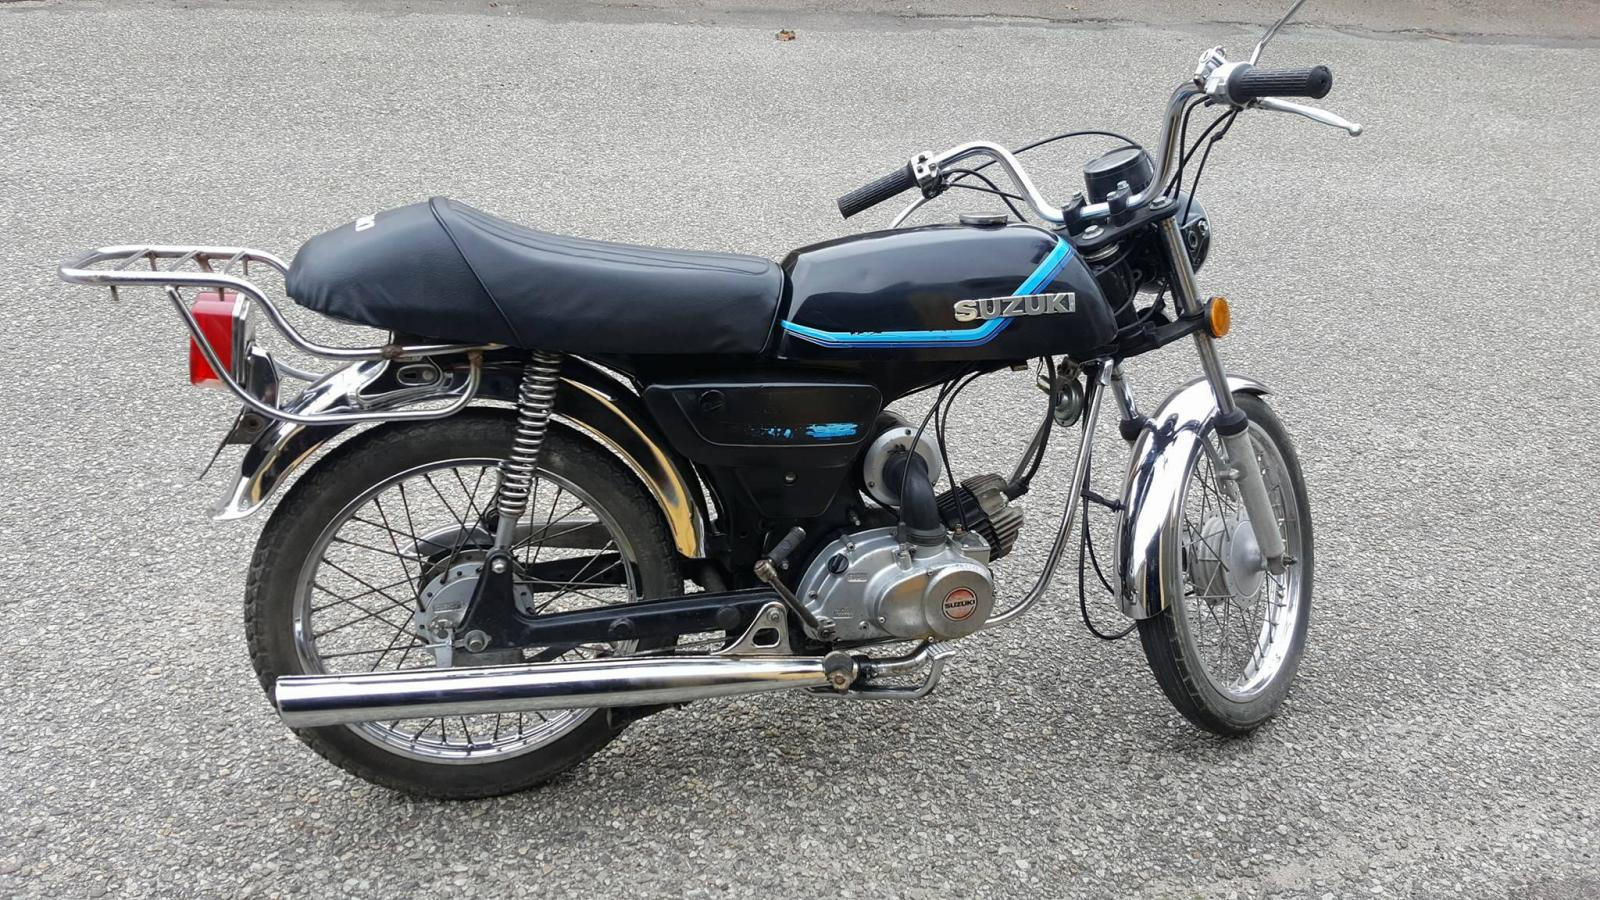 Nygammal caf k50z moped for Garage suzuki moselle